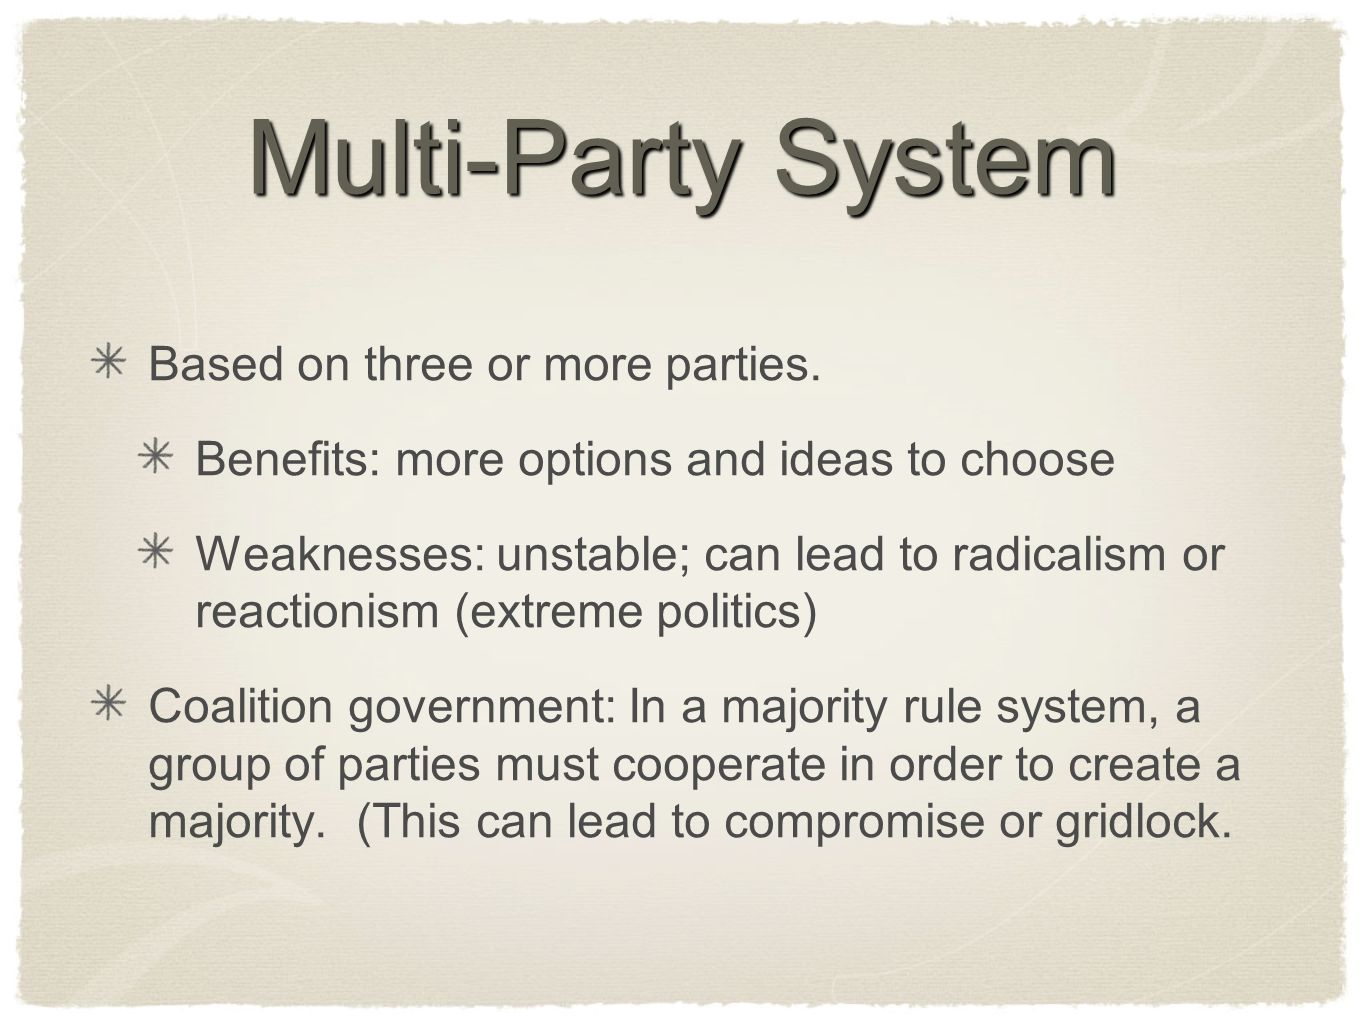 Multi-Party System Based on three or more parties. Benefits: more options and ideas to choose Weaknesses: unstable; can lead to radicalism or reaction